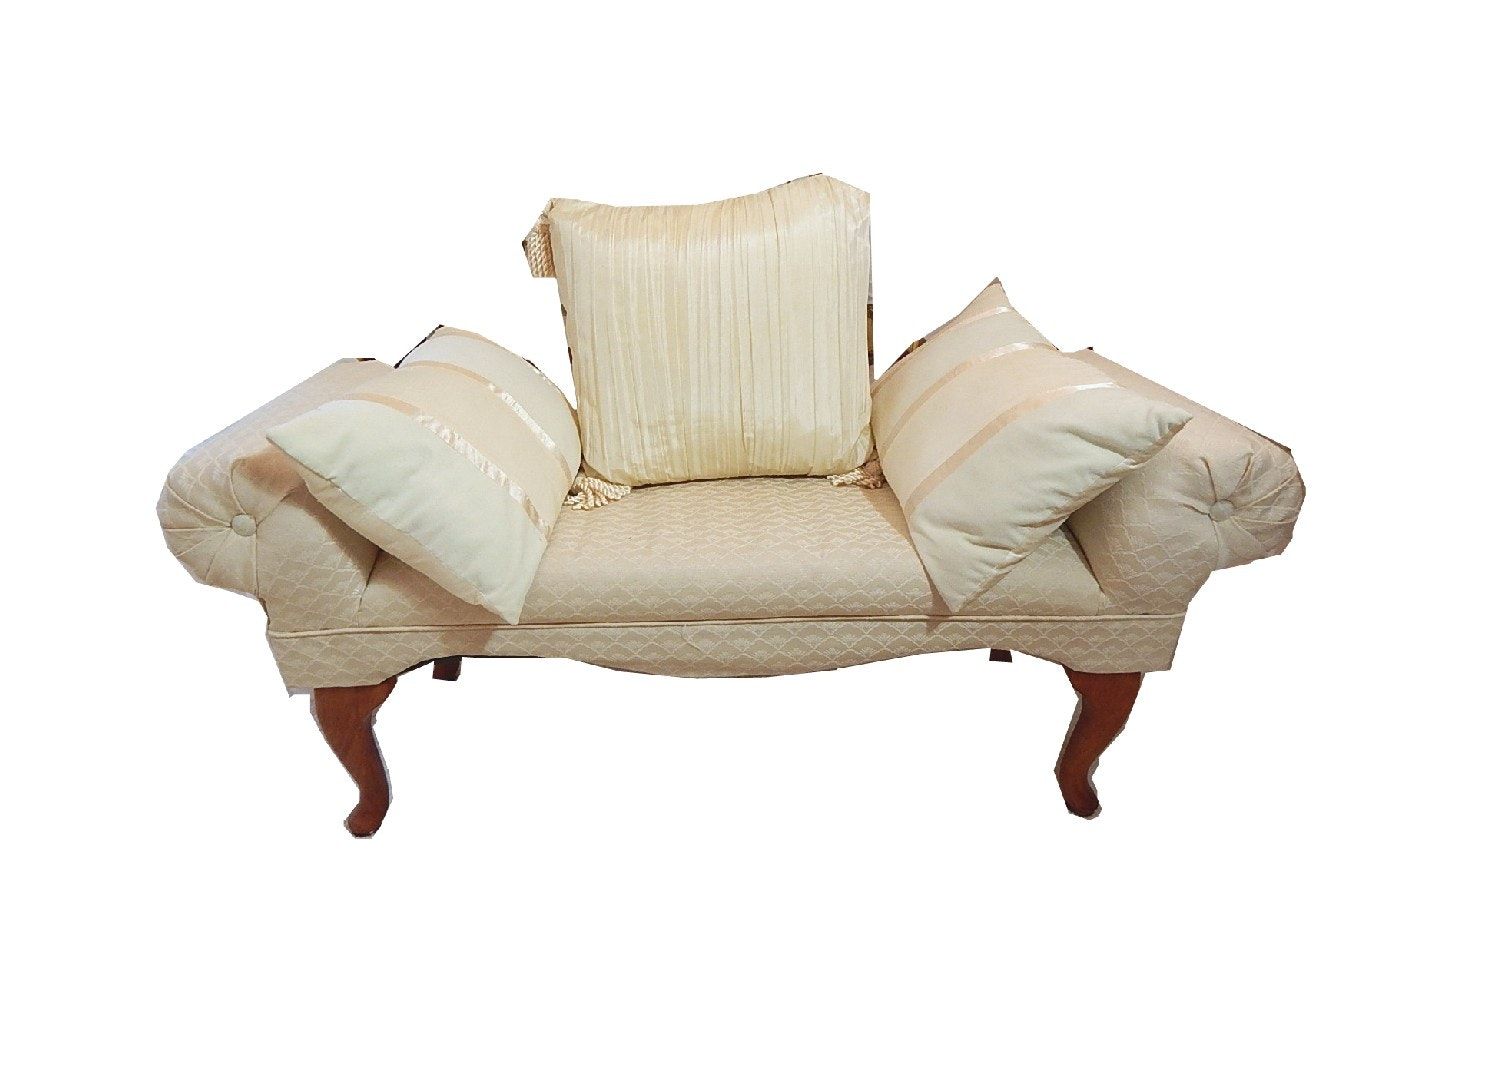 Rose Hill Co. Upholstered Bench with Pillows